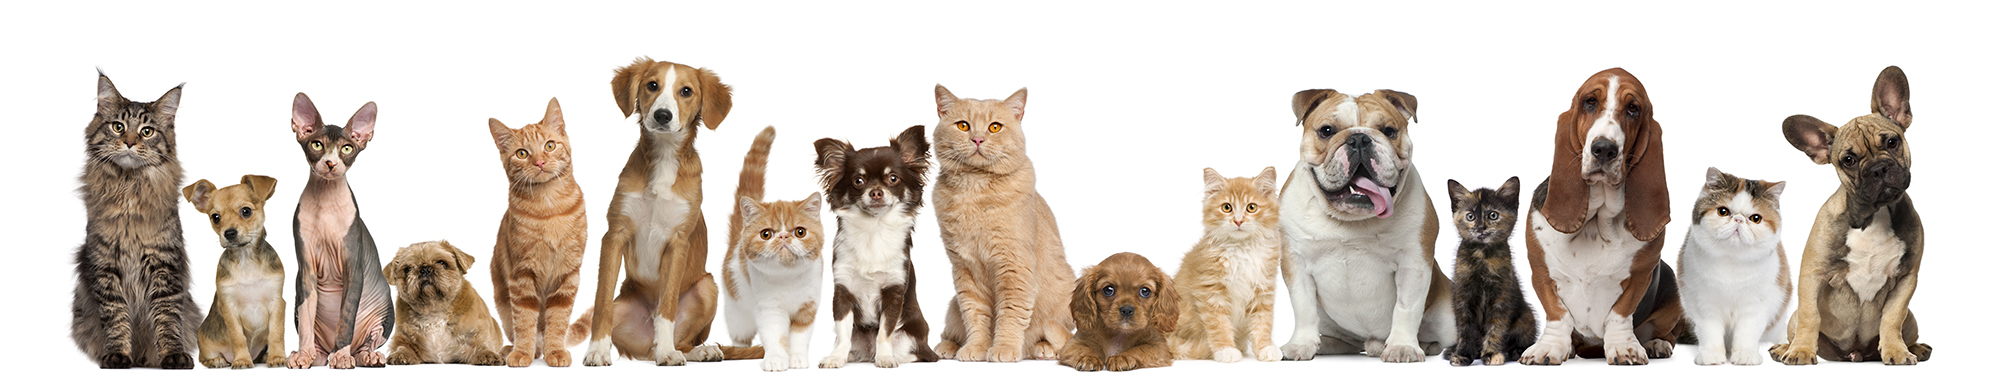 small dogs and cats on white background